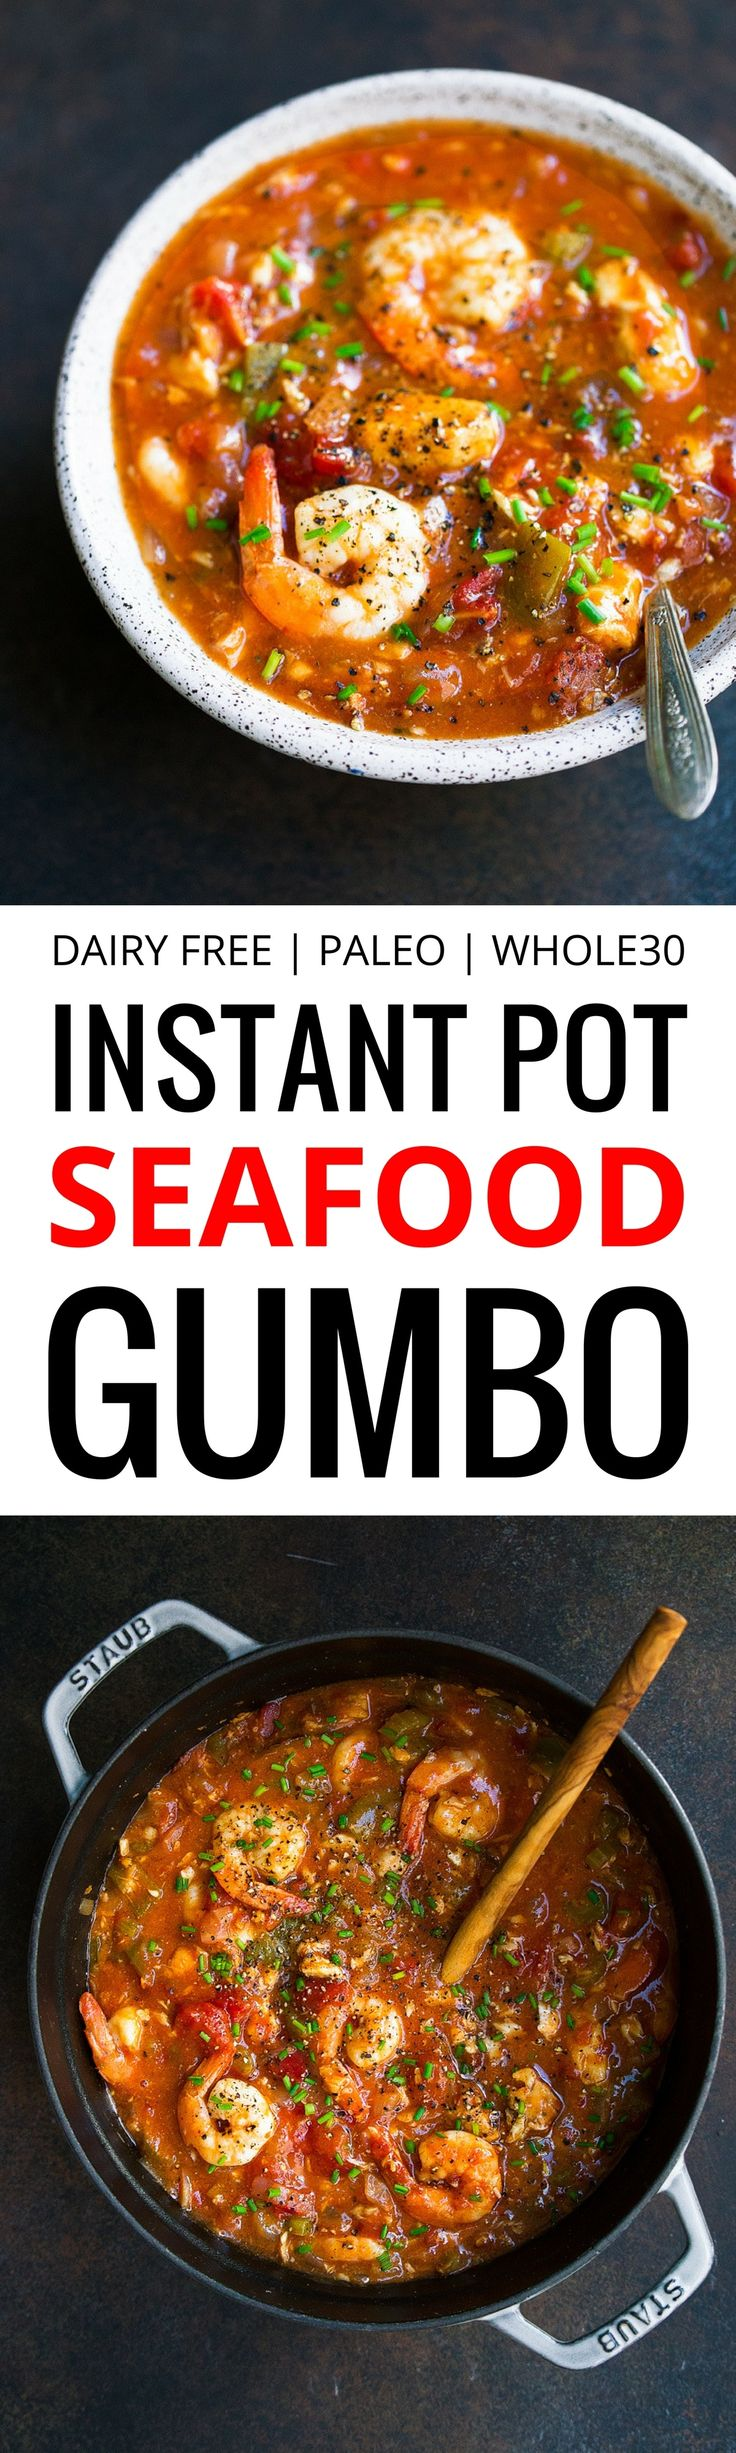 Whole30 Instant Pot Seafood Gumbo. Serve with a scoop of cauliflower rice.